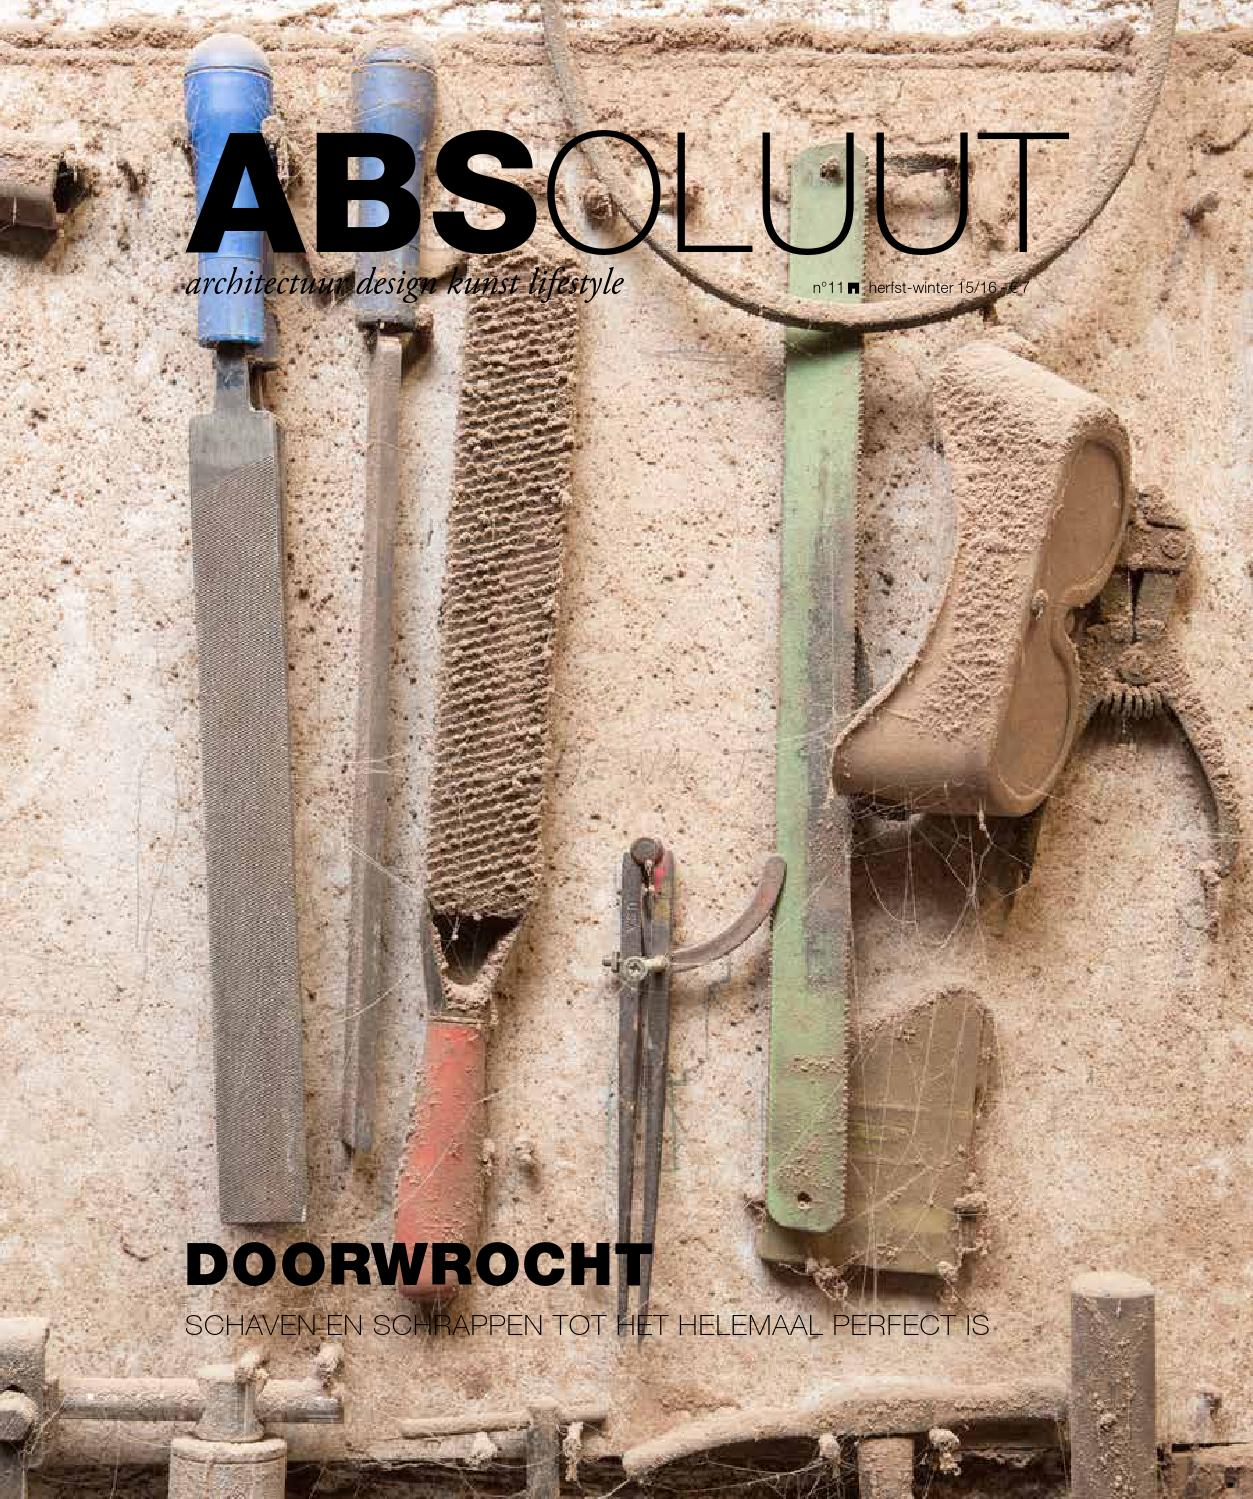 Absoluut 11 by absoluut magazine   issuu